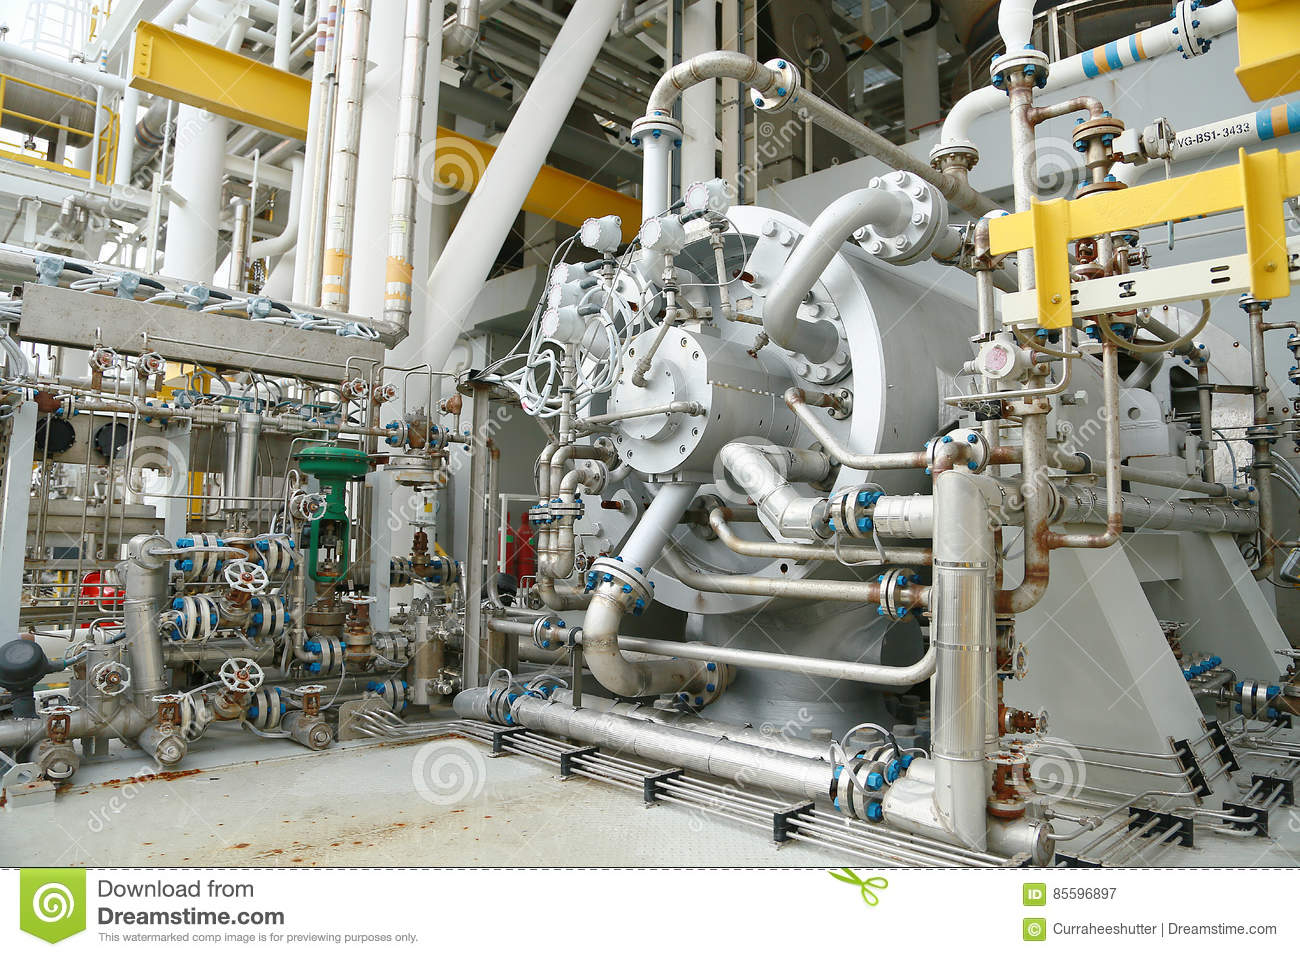 gas turbine industry in asia key Global combined cycle gas turbine (ccgt) market report 2018 provides analysis based on vendors, types, applications and presents upcoming industry trends.